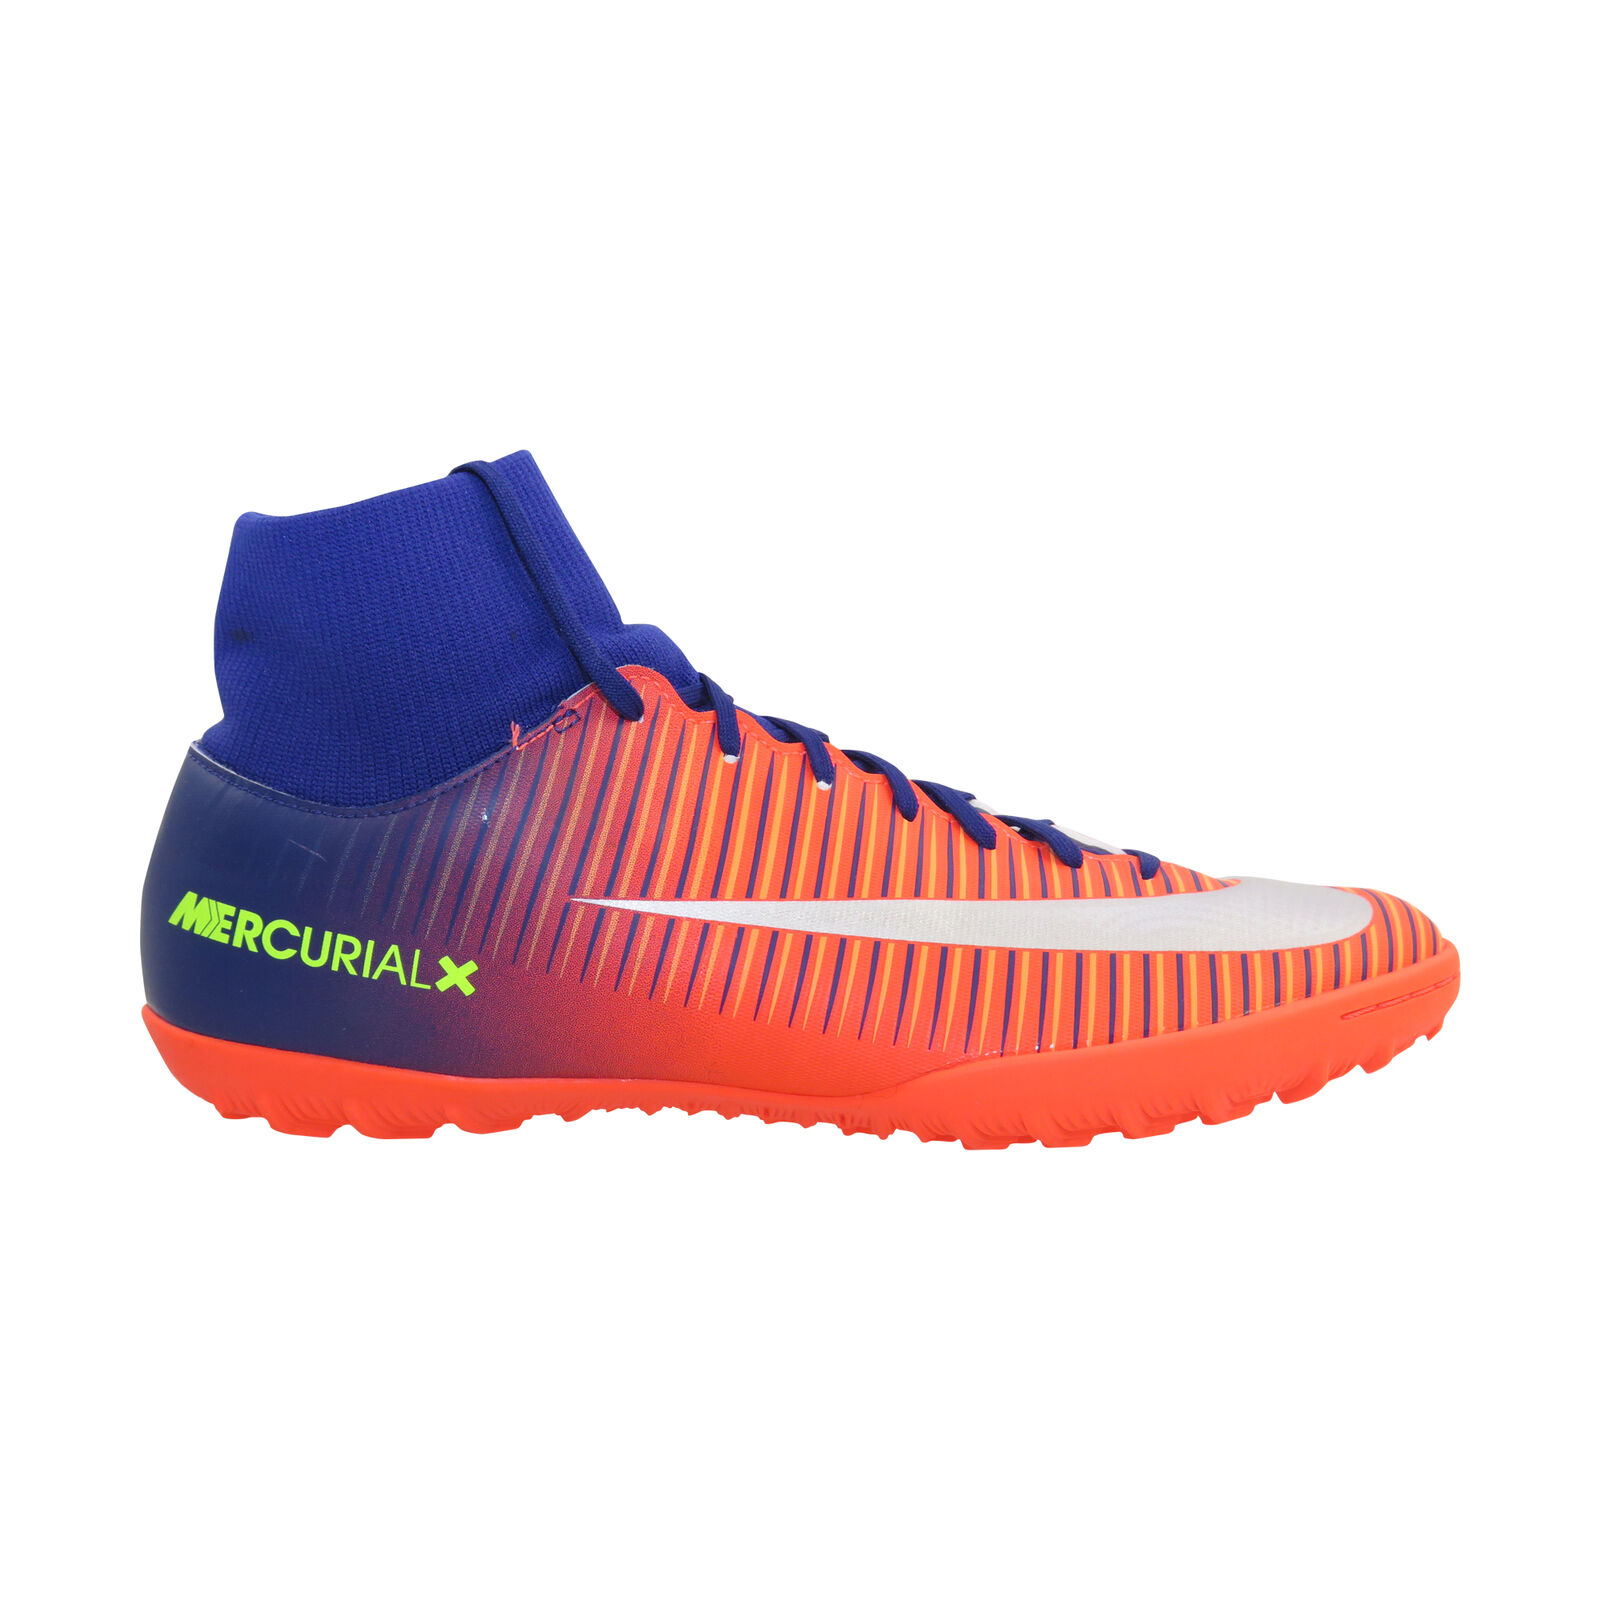 Nike MercurialX Victory VI DF TF Dynamic Fit 903614-409